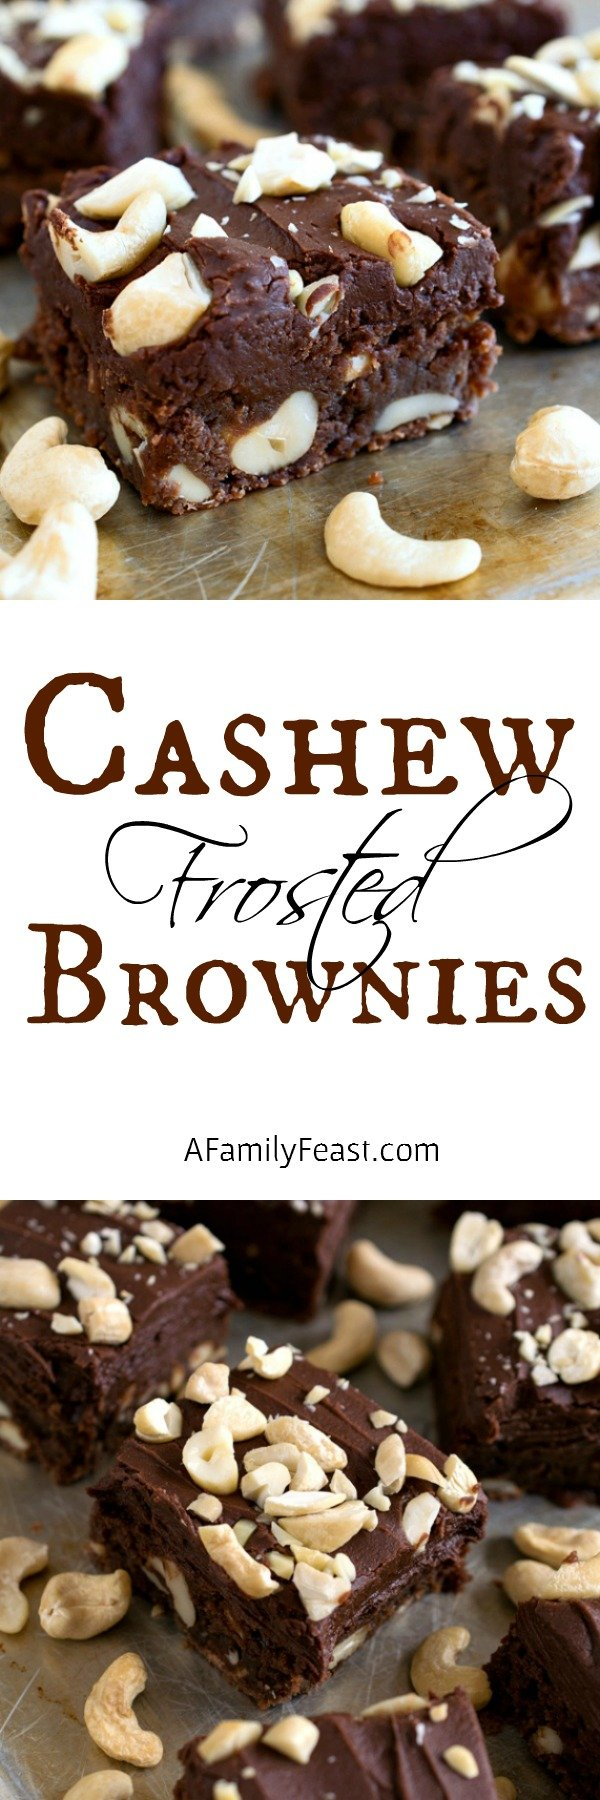 Cashew Frosted Brownies - Decadently delicious, fudgy and dense chocolate frosted brownies loaded cashews!